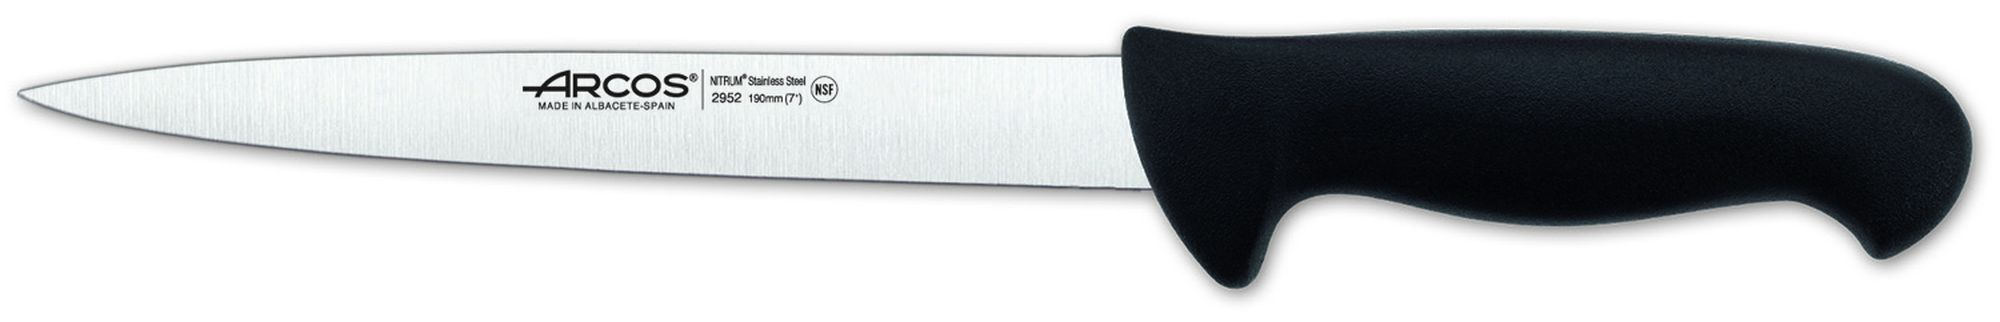 Cuchillo Fileteador Semiflexible Arcos ref.: 295225